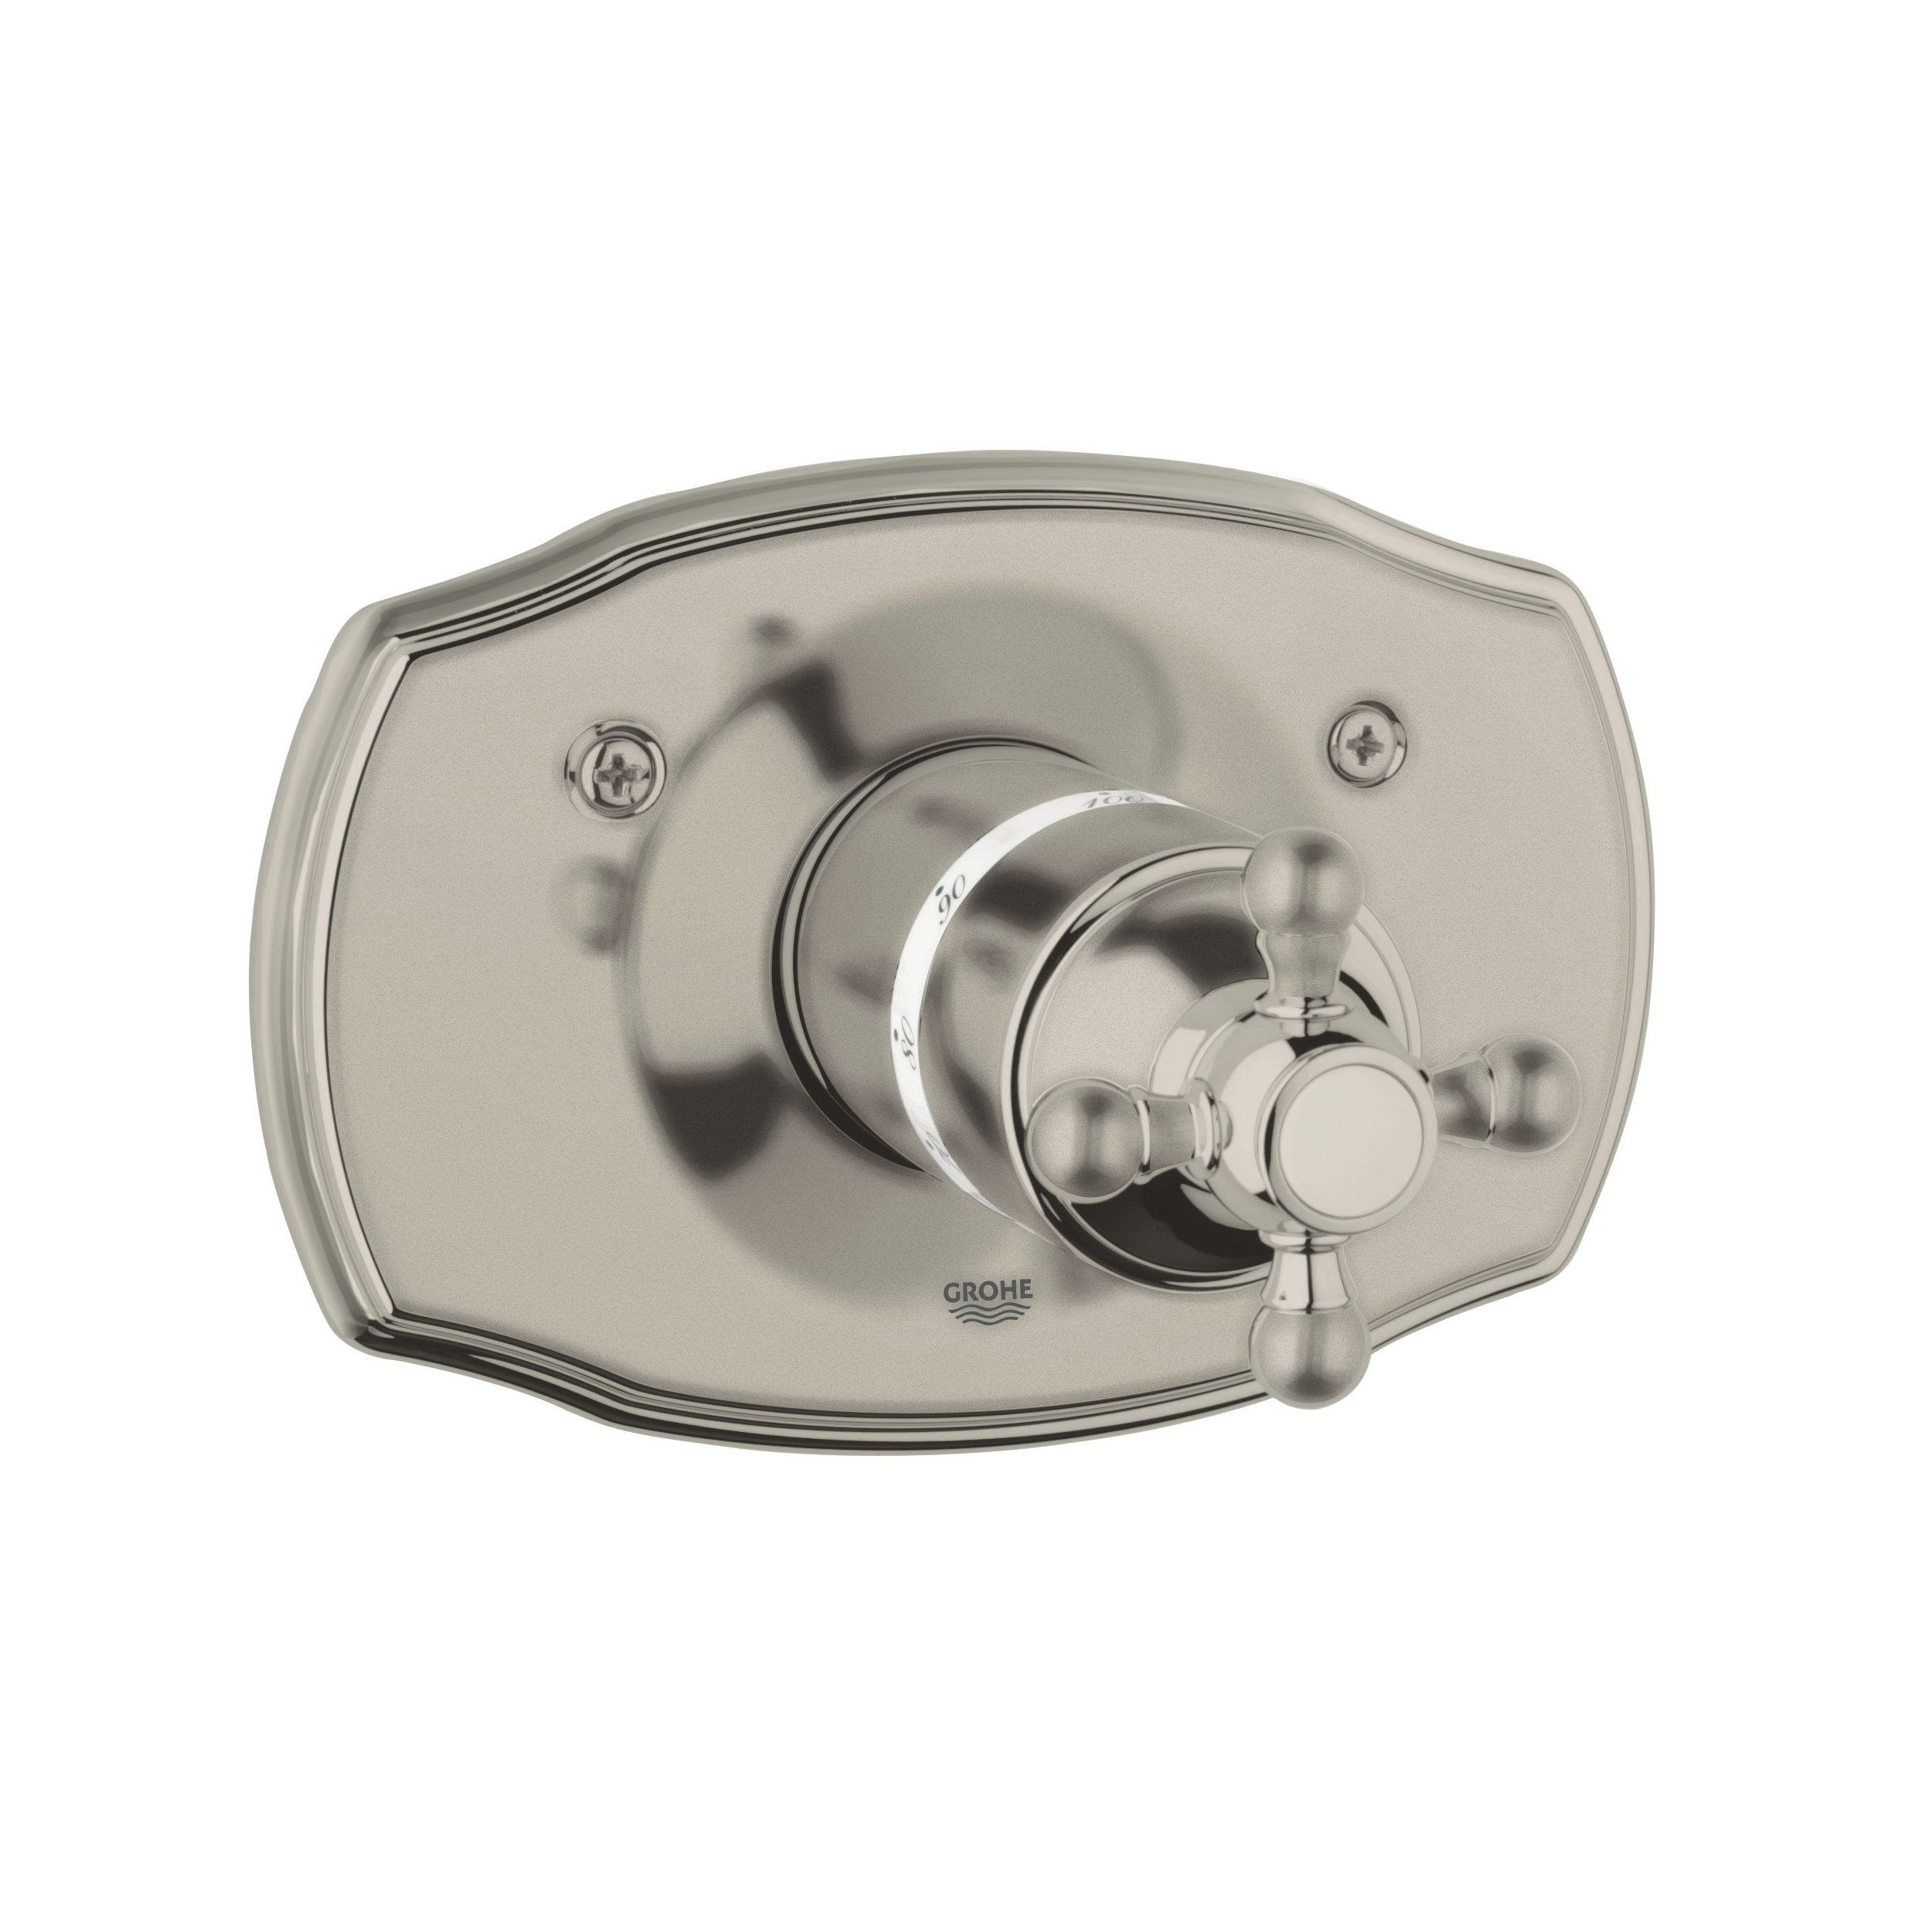 GROHE 19615EN0 Geneva™ Trim, Hand Shower Yes/No: No, Brushed Nickel